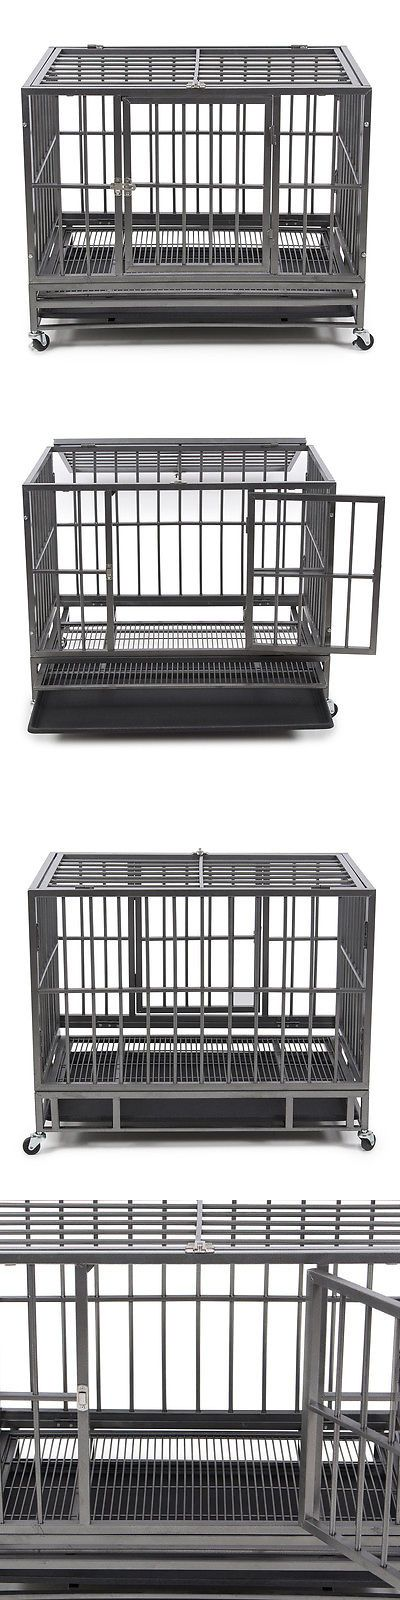 Cages and Crates 121851: New 36 Heavy Duty Frame Dog Animal Pet Crate Cage Kennel With (4)-Wheels Silver BUY IT NOW ONLY: $57.99